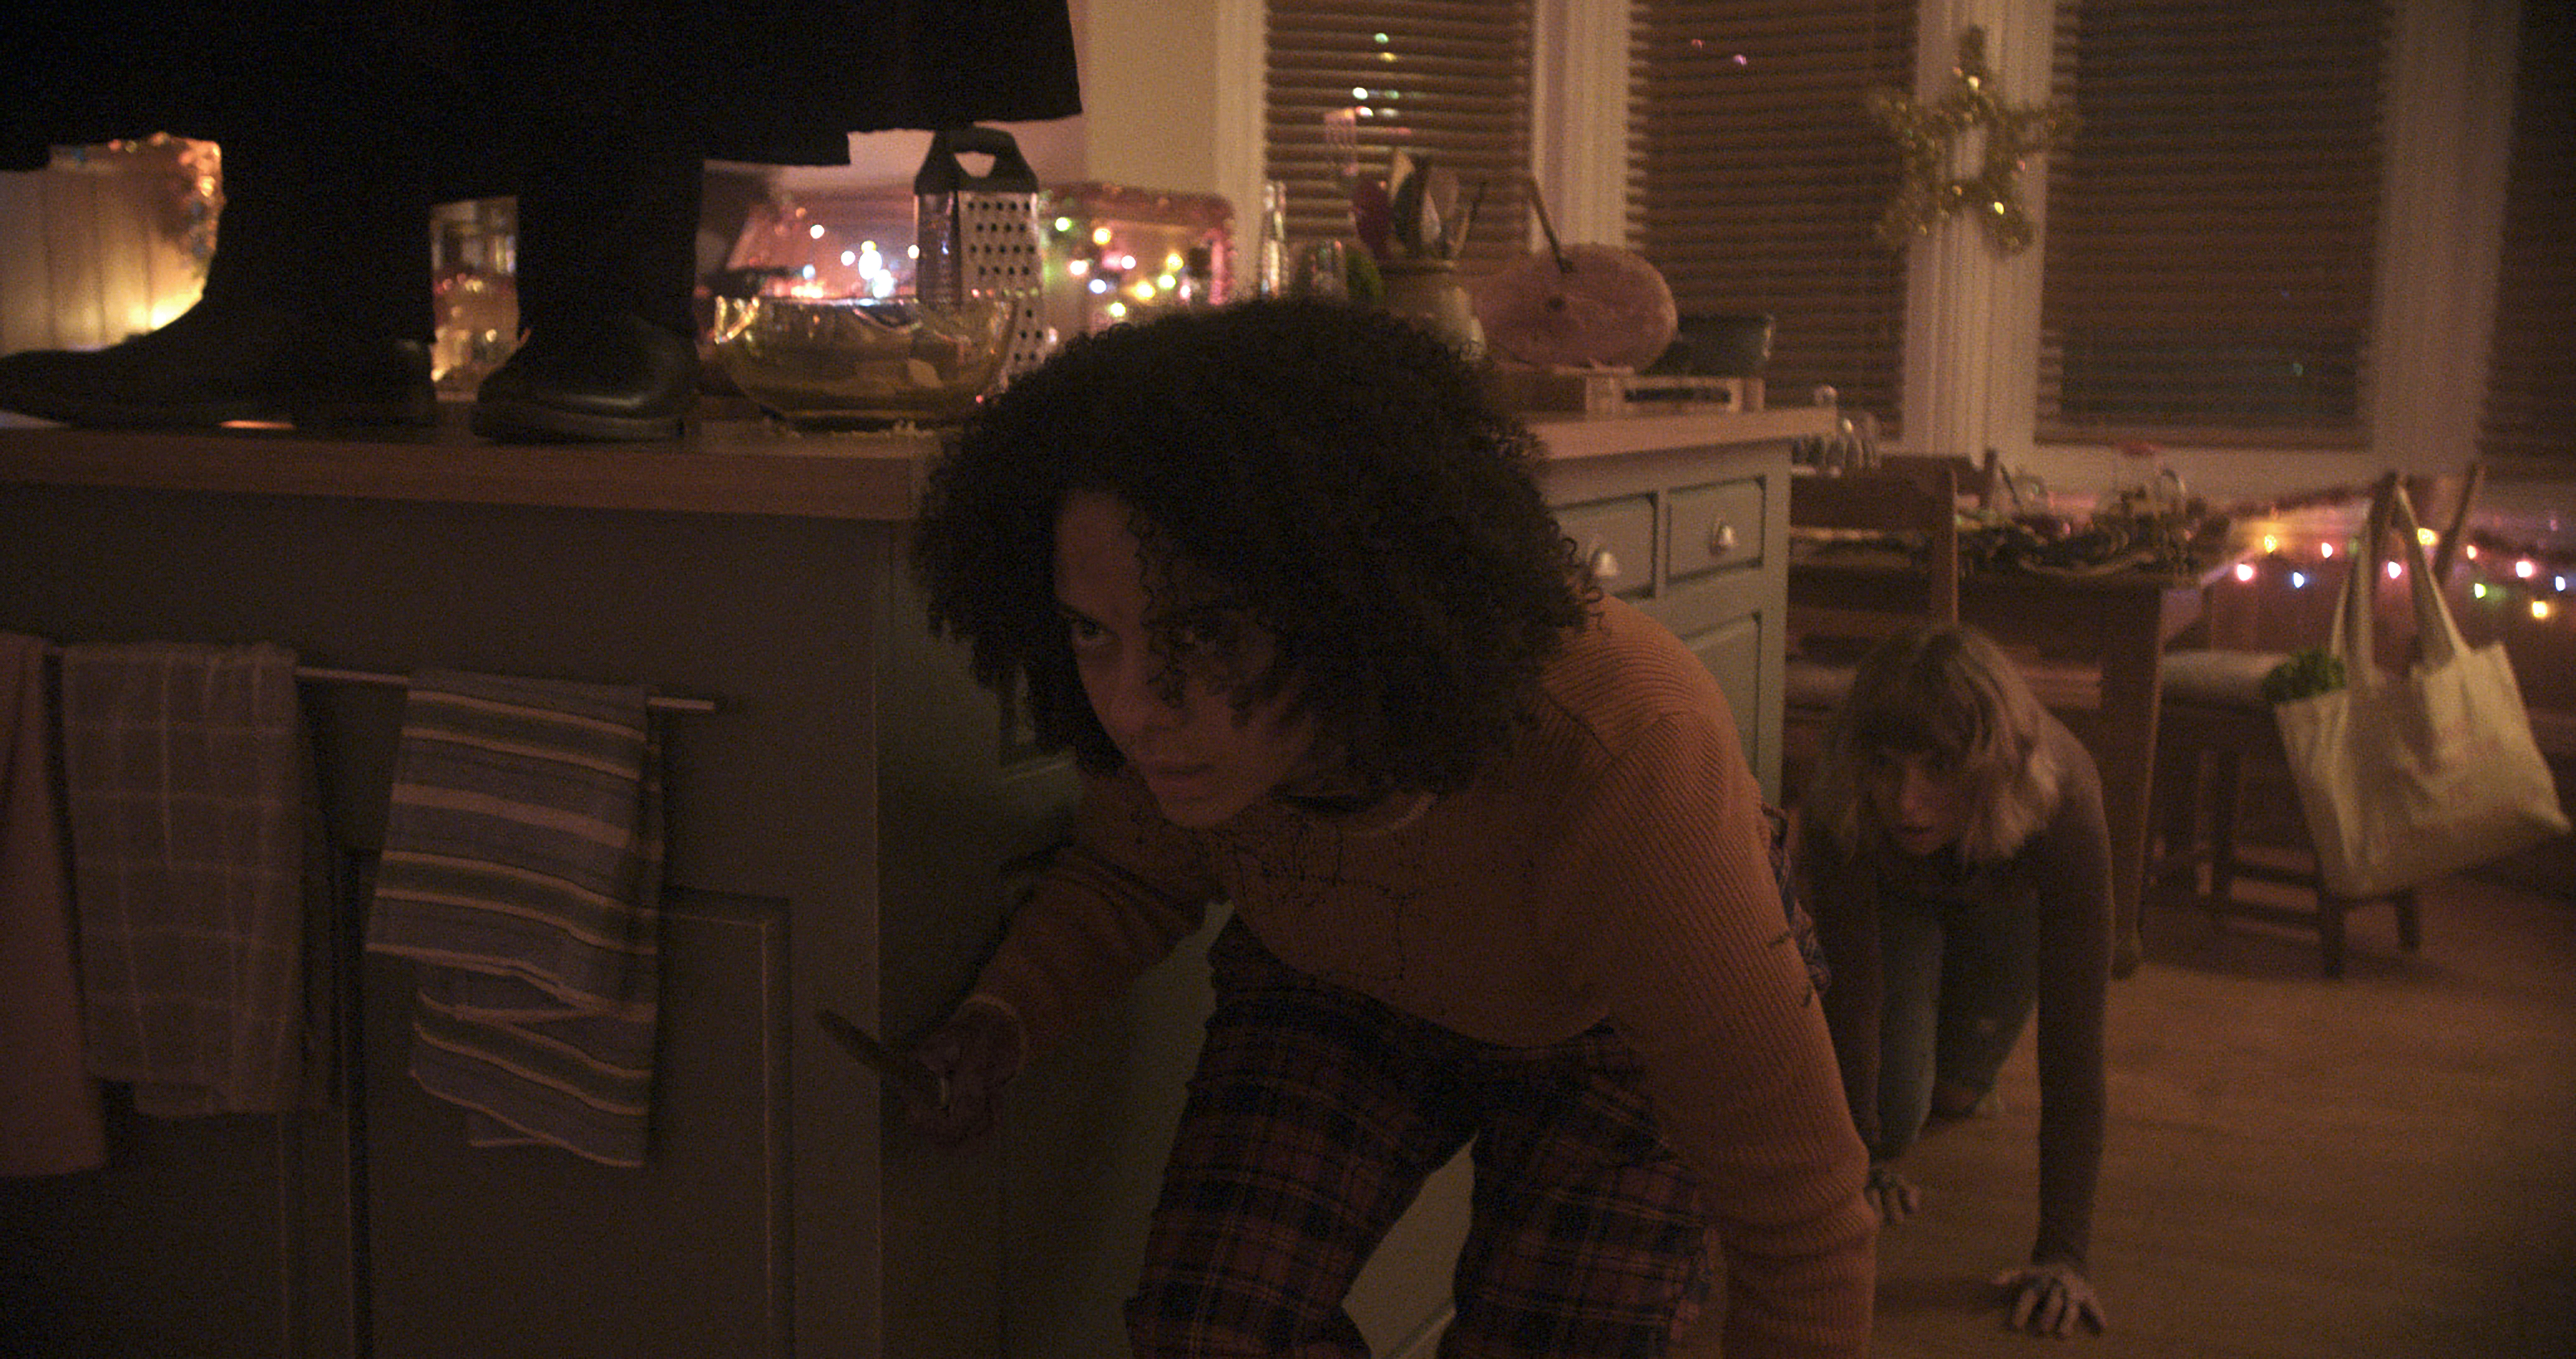 """(from left) Kris (Aleyse Shannon) and Riley (Imogen Poots) in """"Black Christmas,"""" co-written and directed by Sophia Takal."""